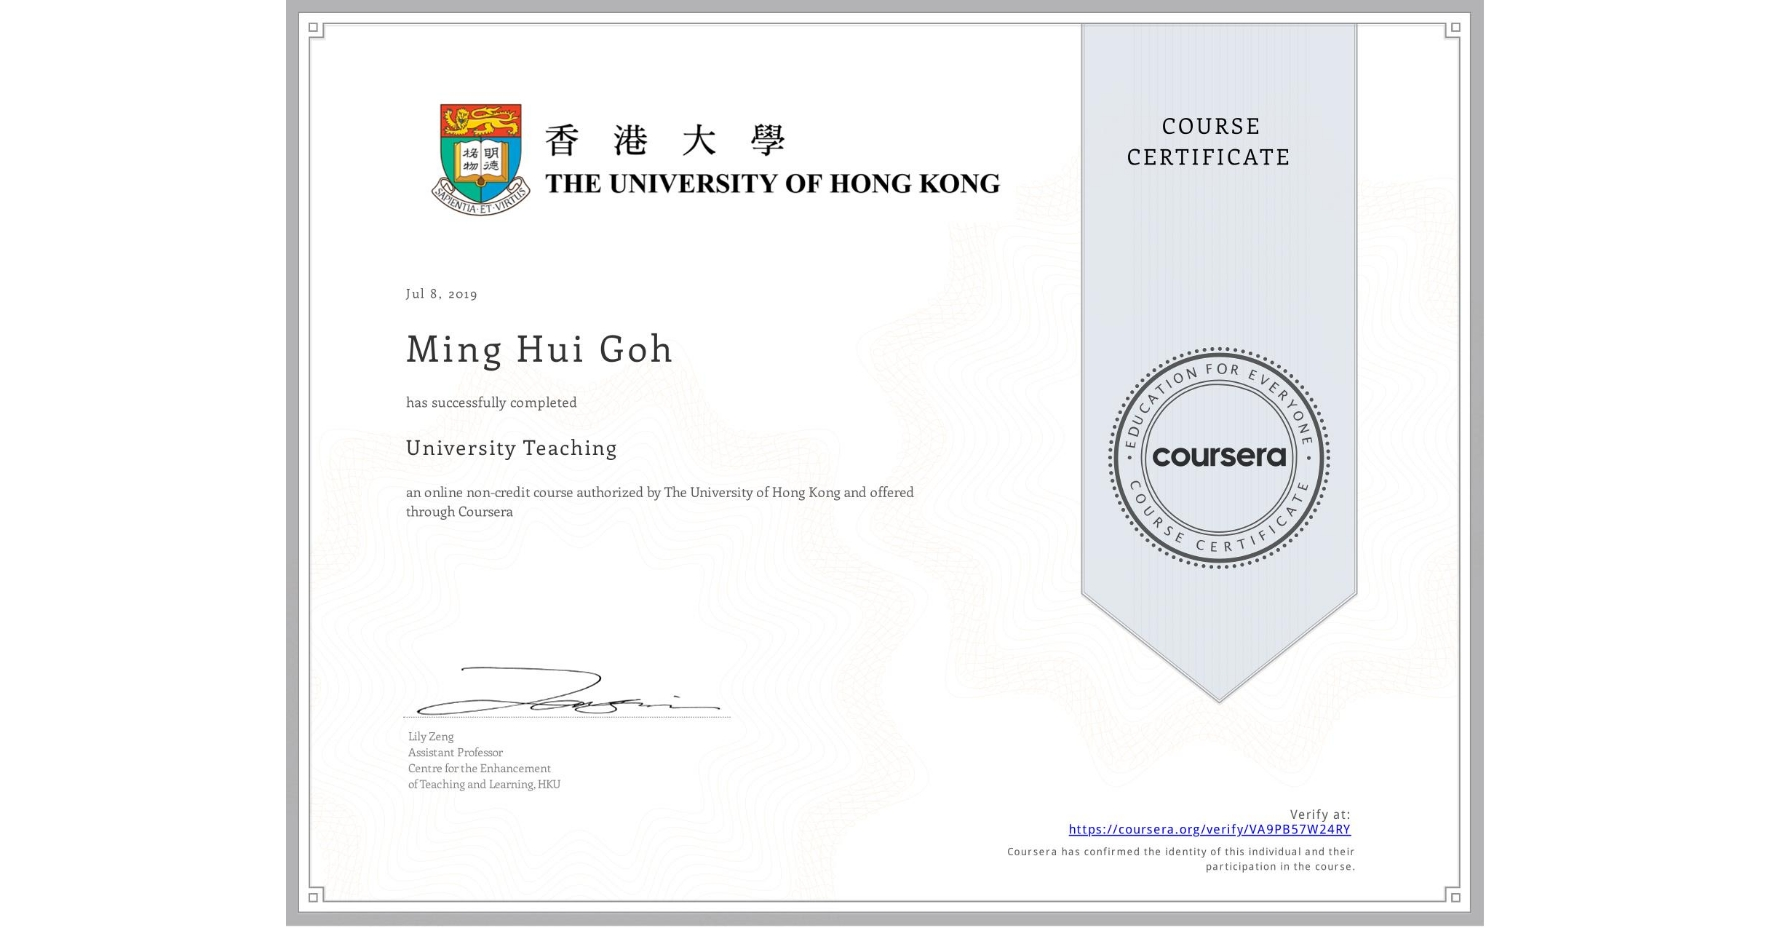 View certificate for Ming Hui  Goh, University Teaching, an online non-credit course authorized by The University of Hong Kong and offered through Coursera